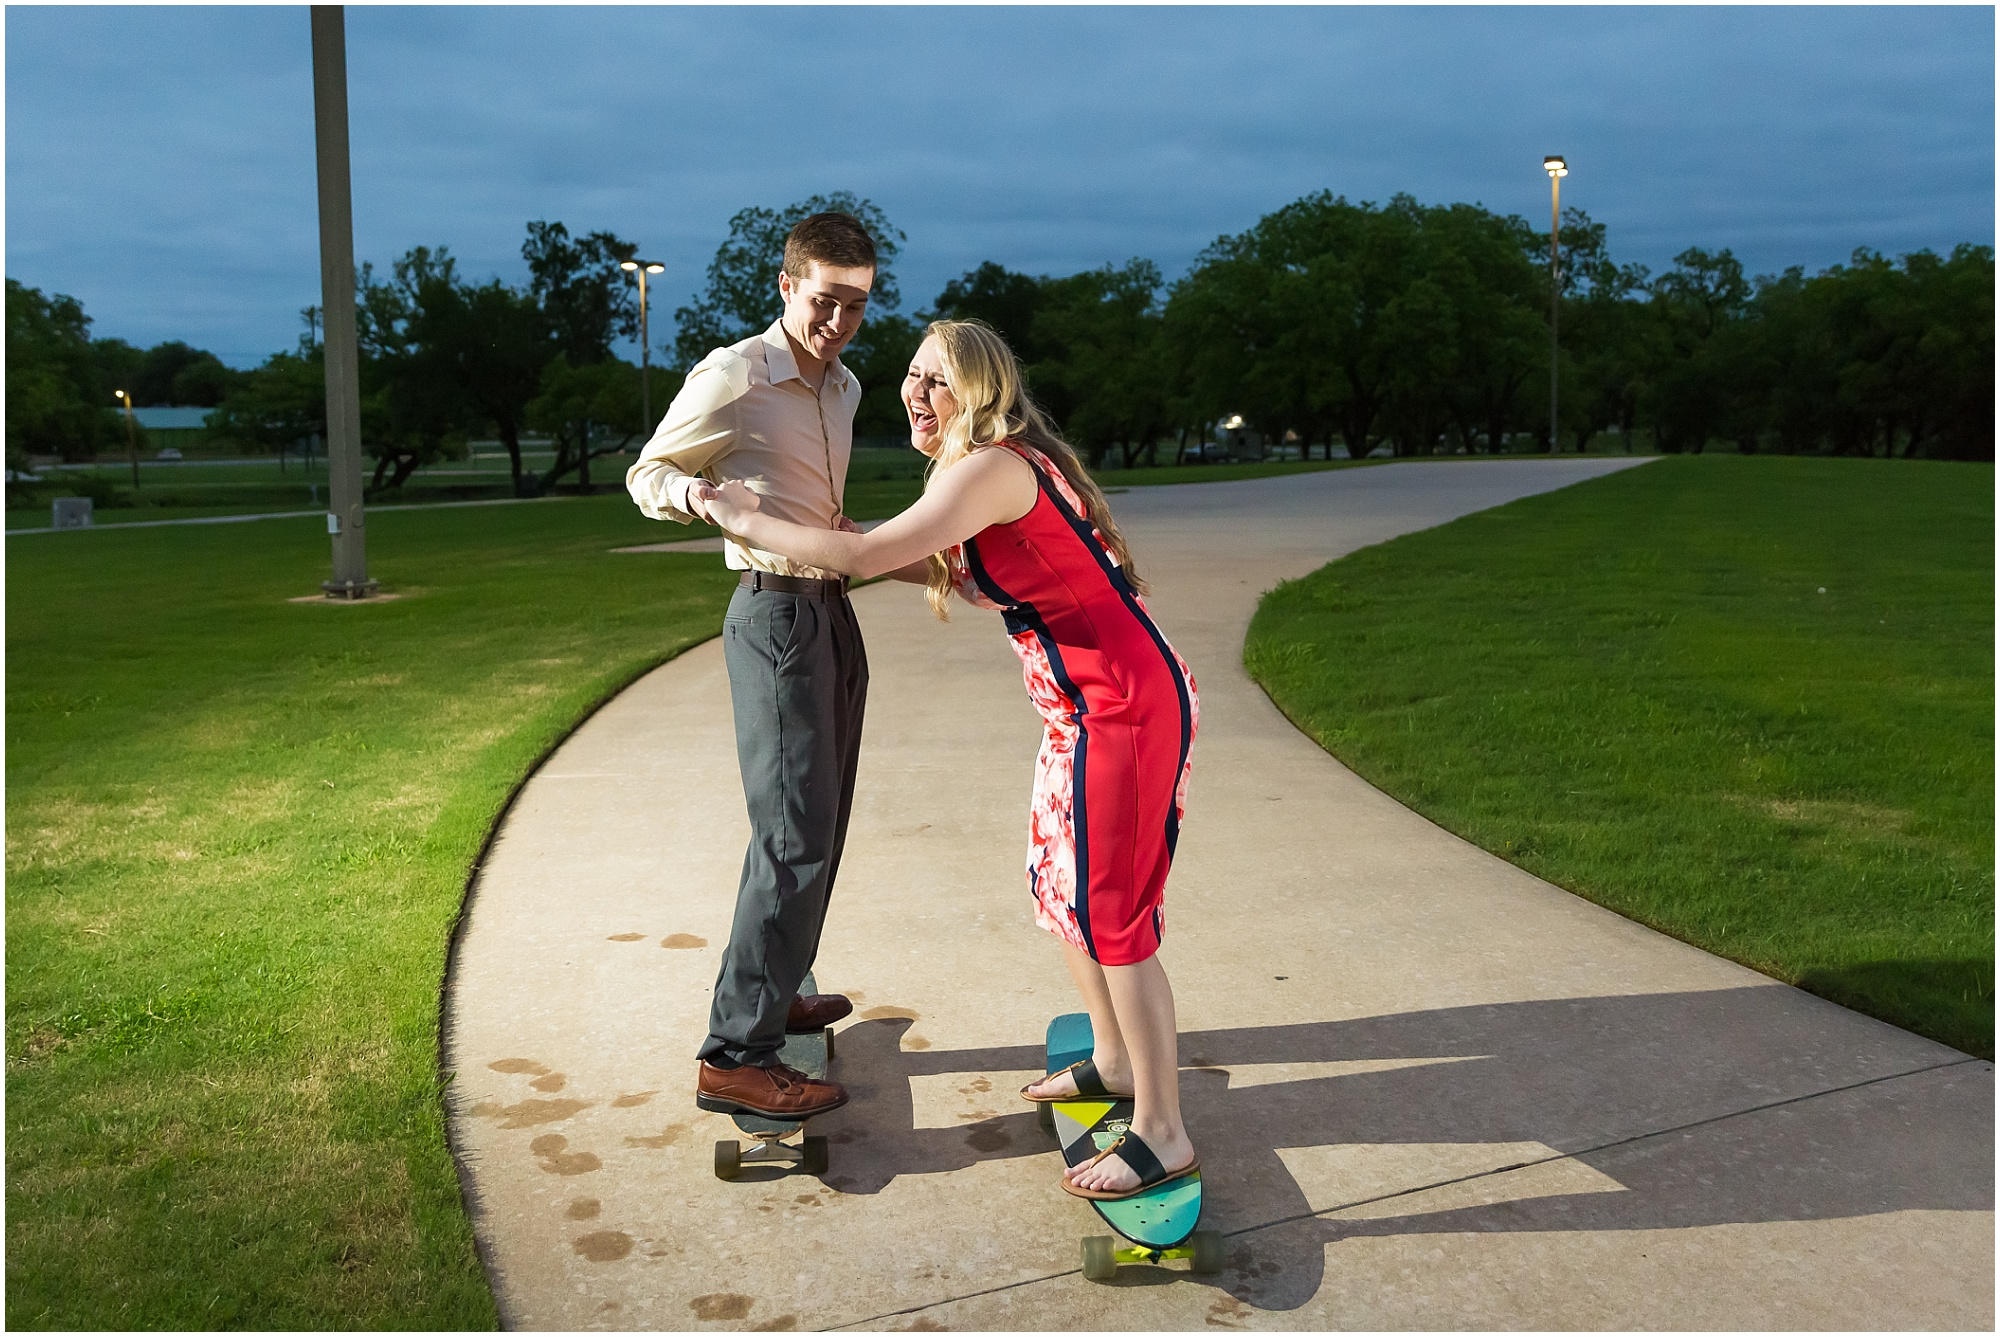 A guy helps his fiance long board down a sidewalk while she laughs during their engagement photos in Stephenville, Texas - Jason & Melaina Photography - www.jasonandmelaina.com